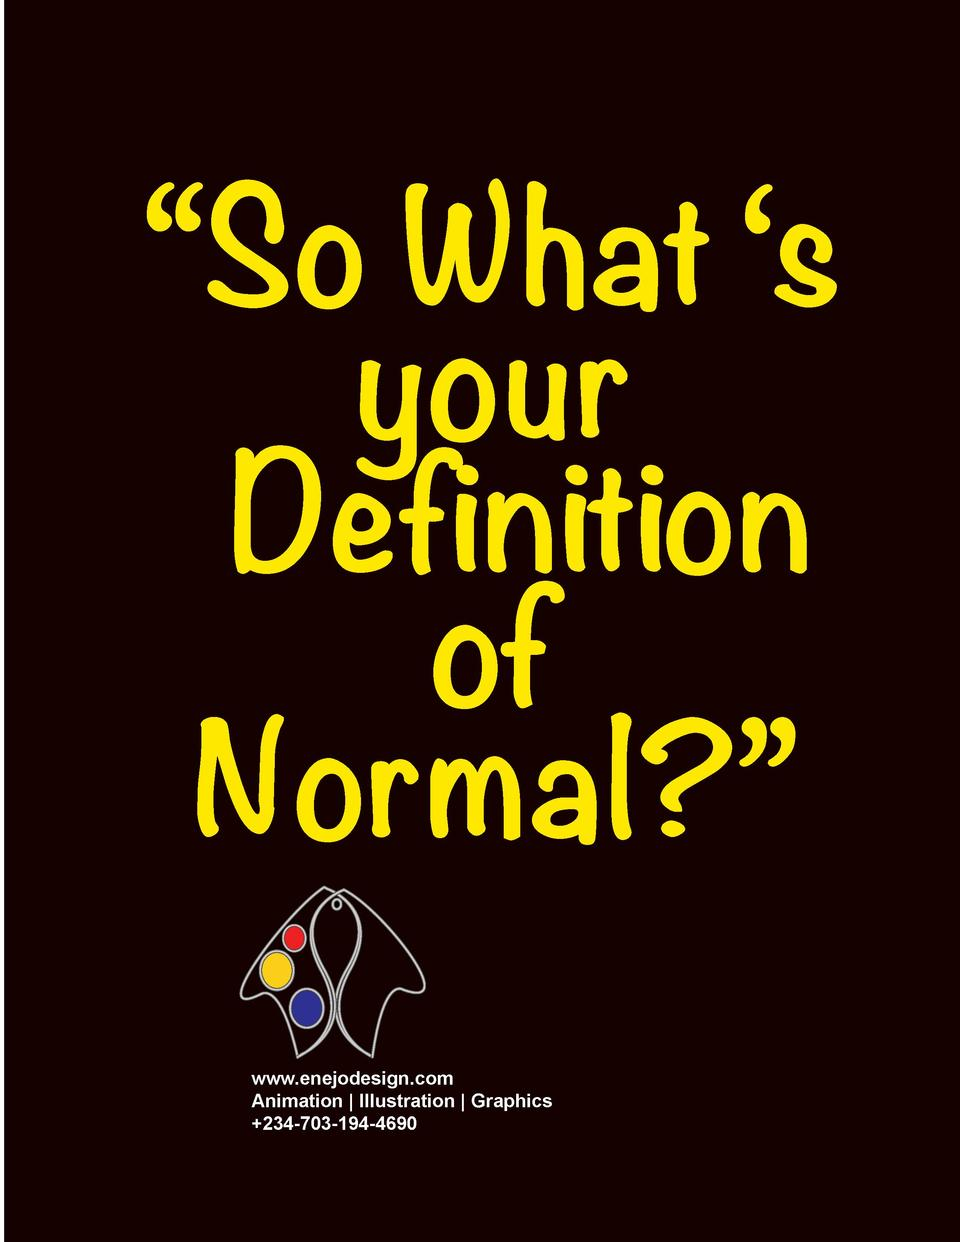 So What    s your   Definition of Normal     www.enejodesign.com Animation   Illustration   Graphics  234-703-194-4690 ...